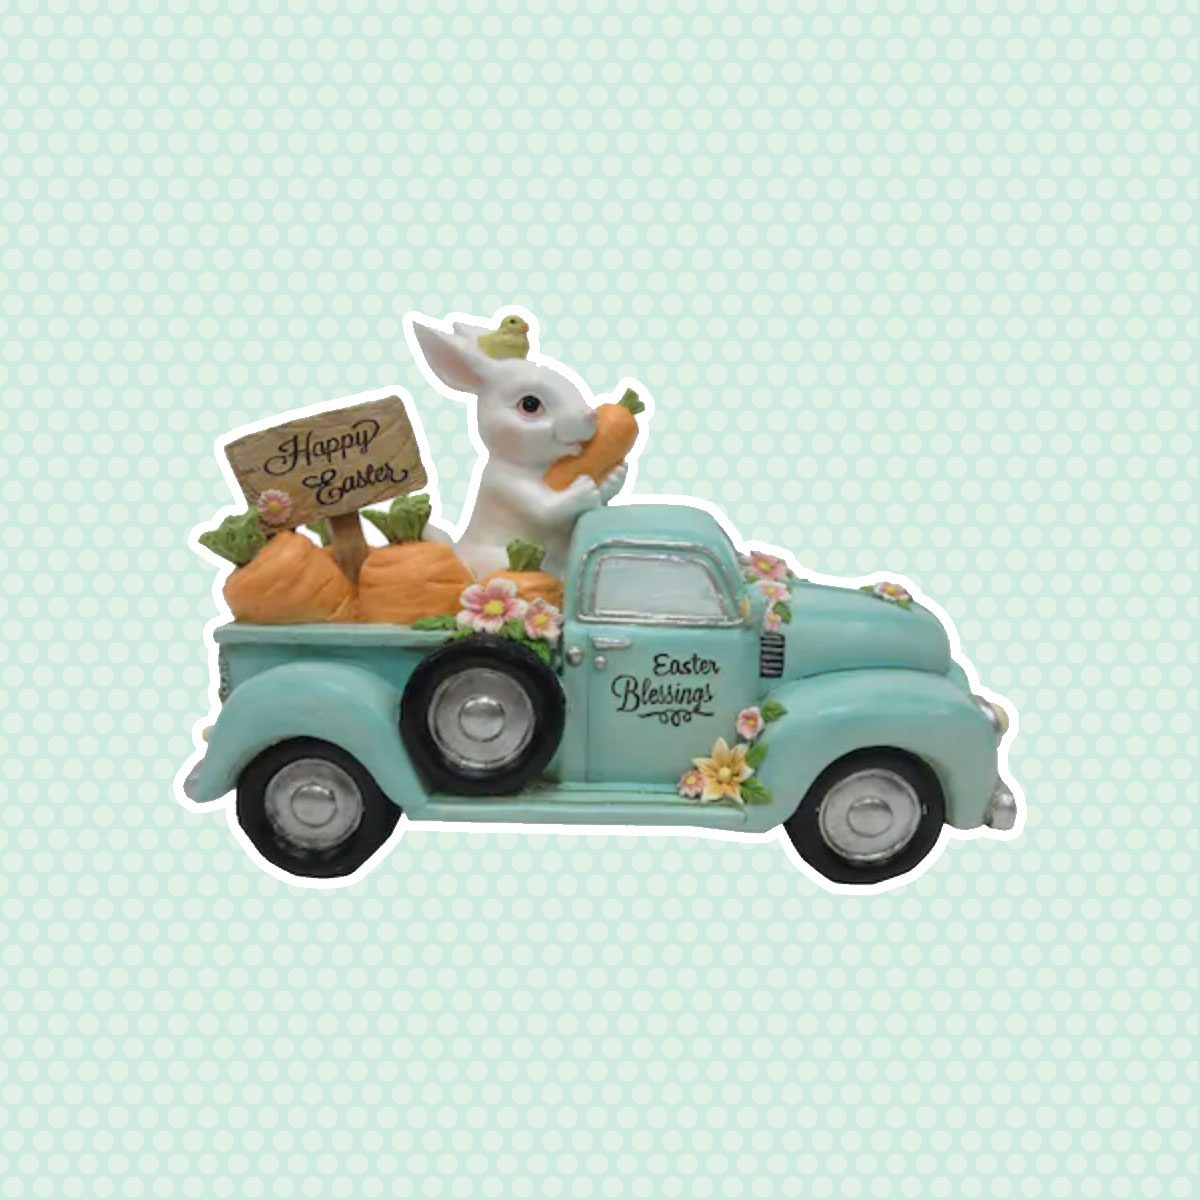 Bunny In A Truck vintage easter decorations